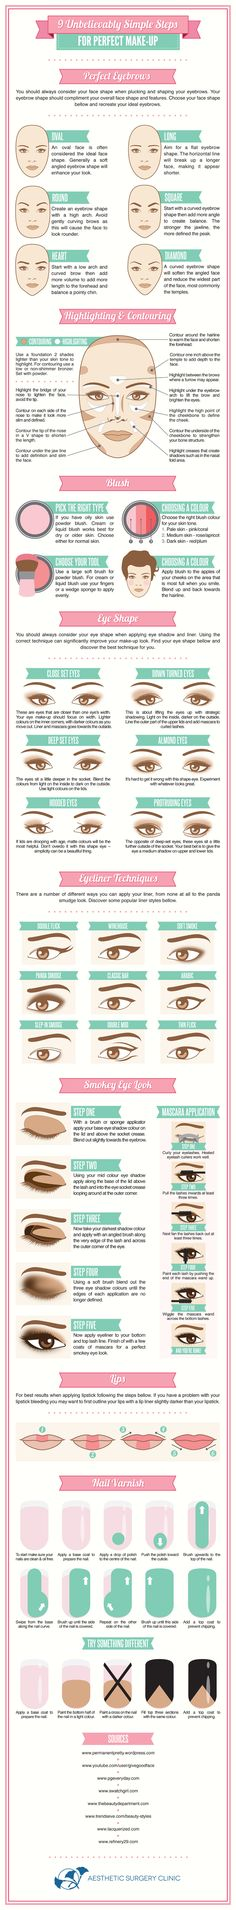 9 unbelievably simple steps for perfect make-up - all you need to know about perfect eyebrows, highlighting and contouring, blush, eye shape, eyeliner techniques, the smokey eye look, lips, and nail care!